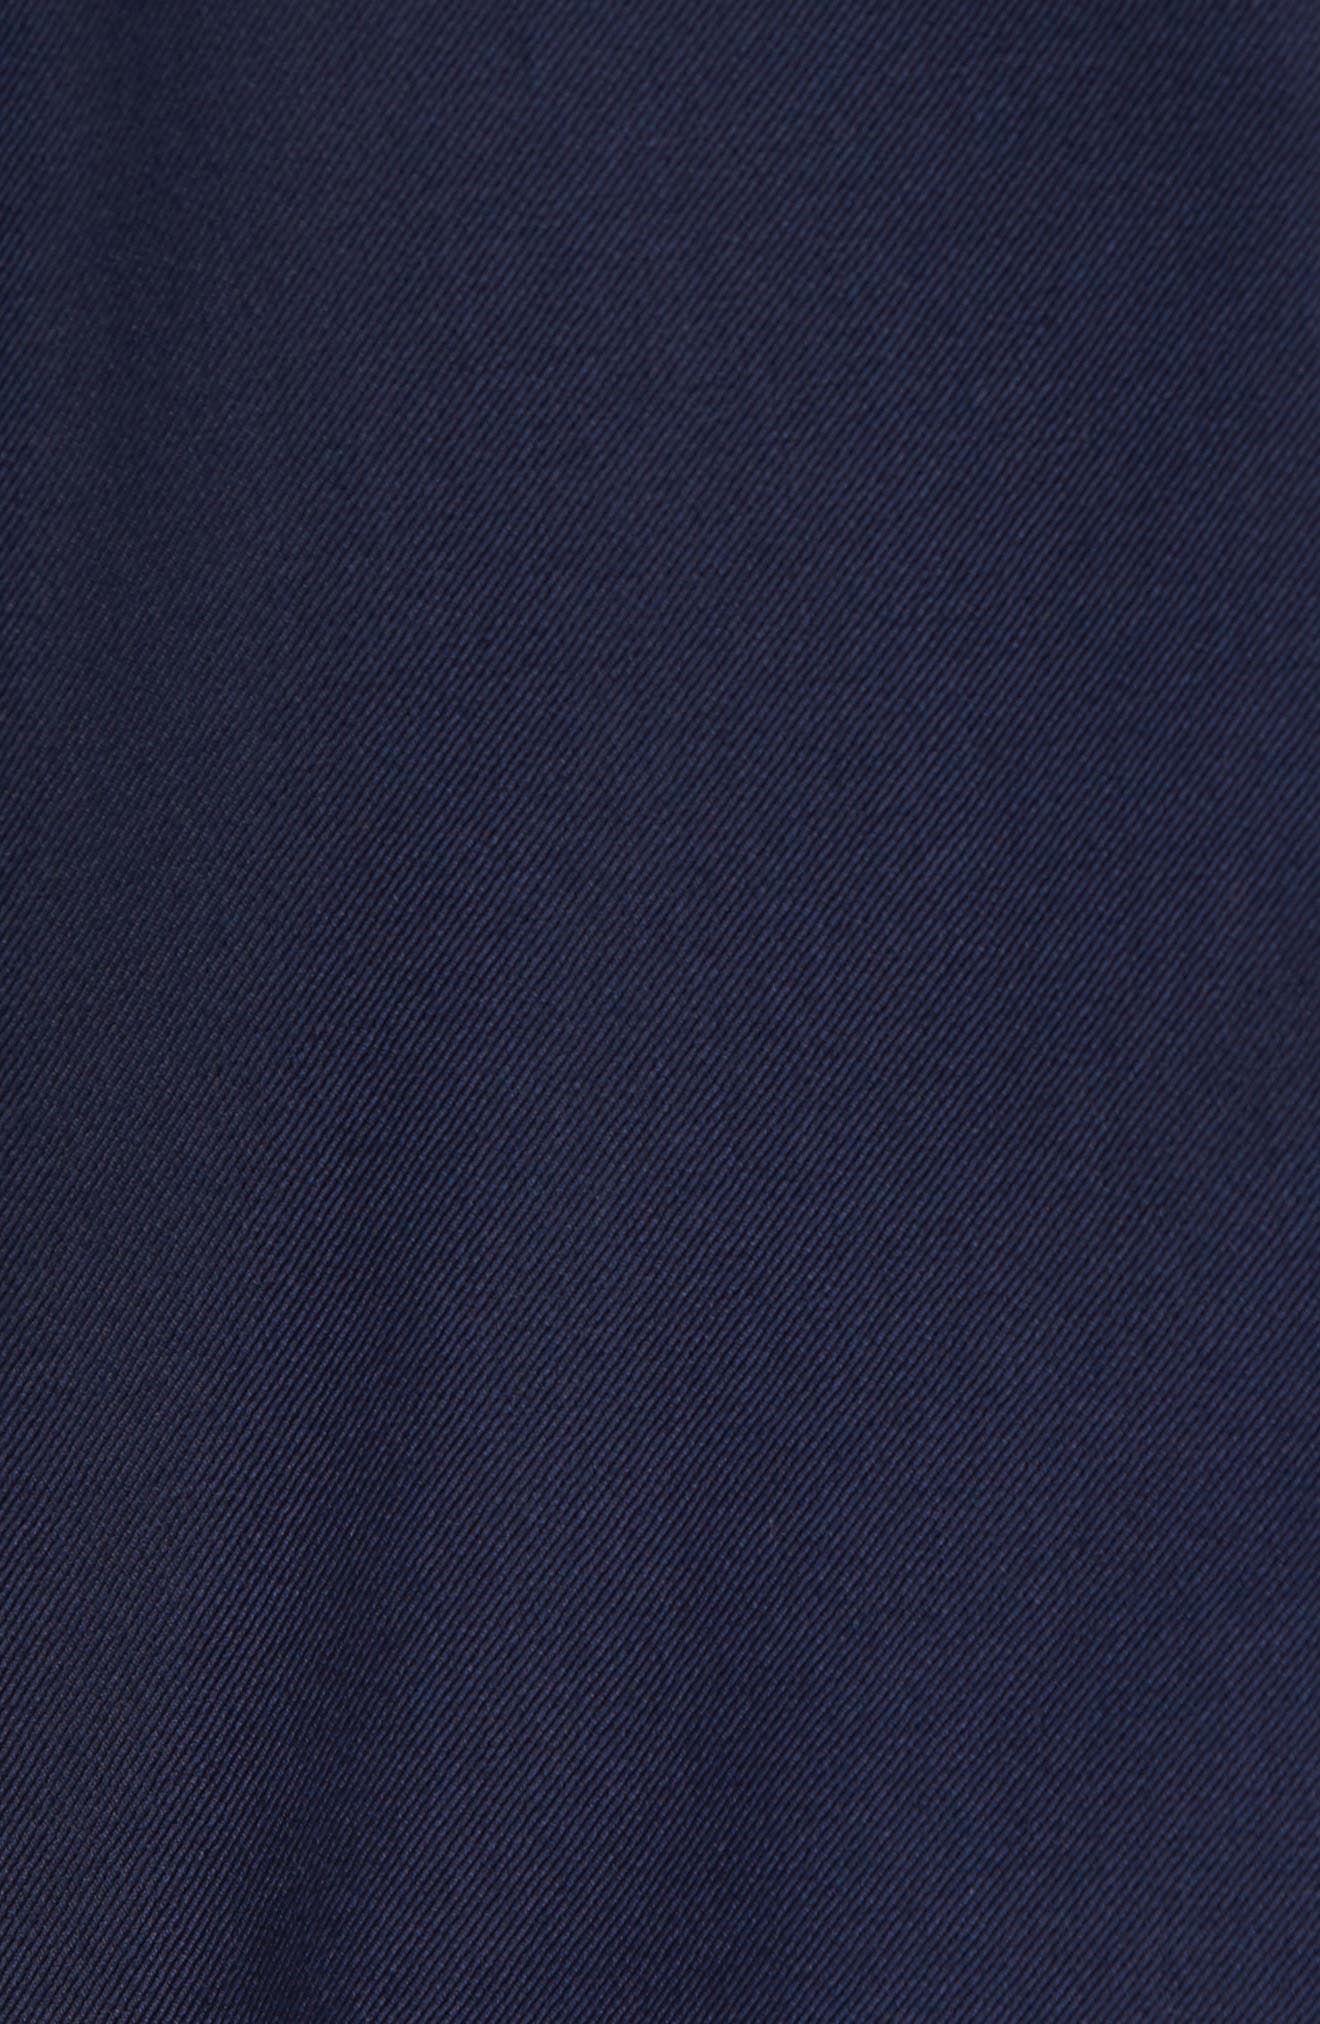 Classic B Fit Loro Piana Wool Suit,                             Alternate thumbnail 7, color,                             NAVY